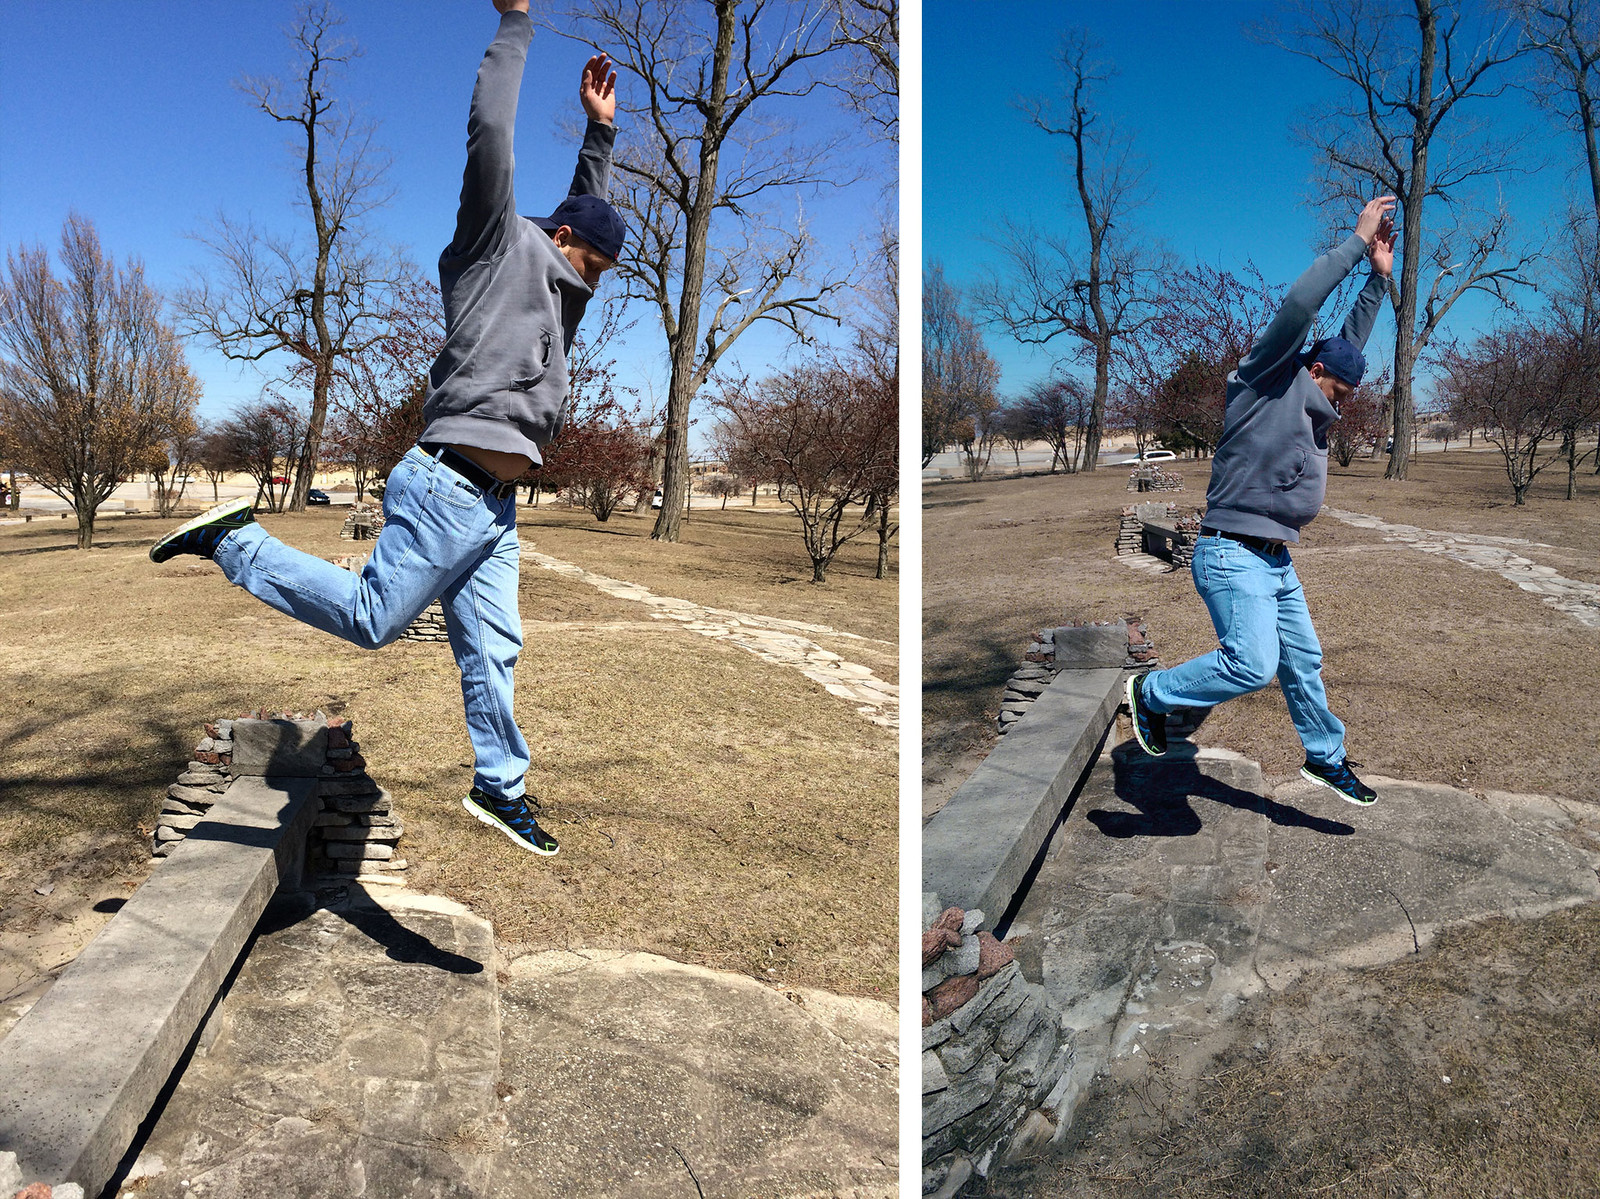 HTC One M8 vs. iPhone 5s: Motion capture